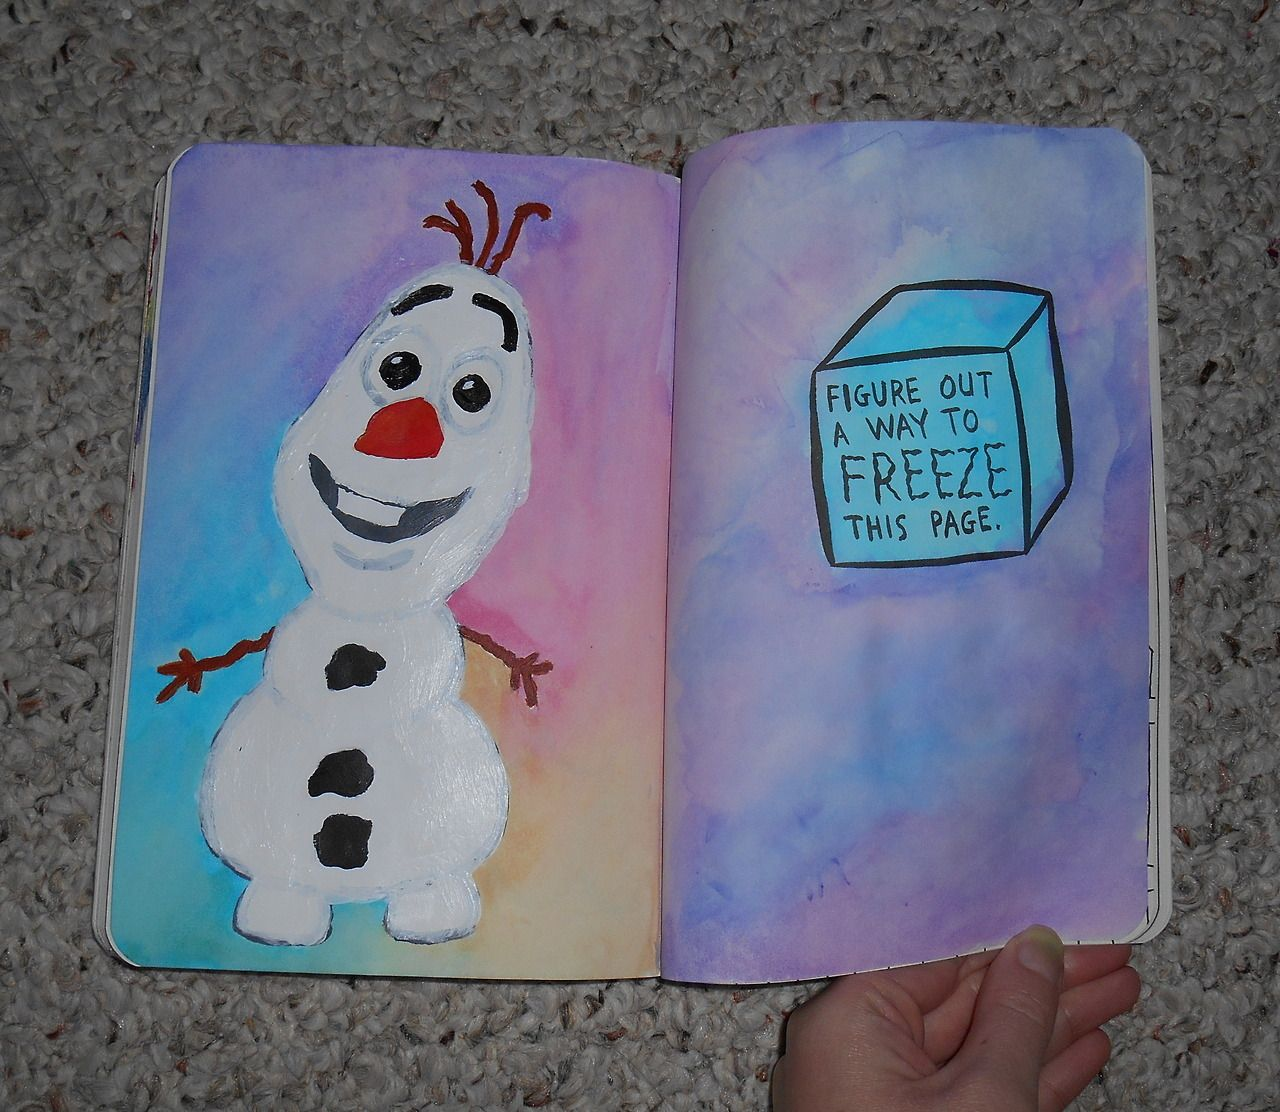 Figure Out a Way to Freeze this Page. Olaf seemed fitting